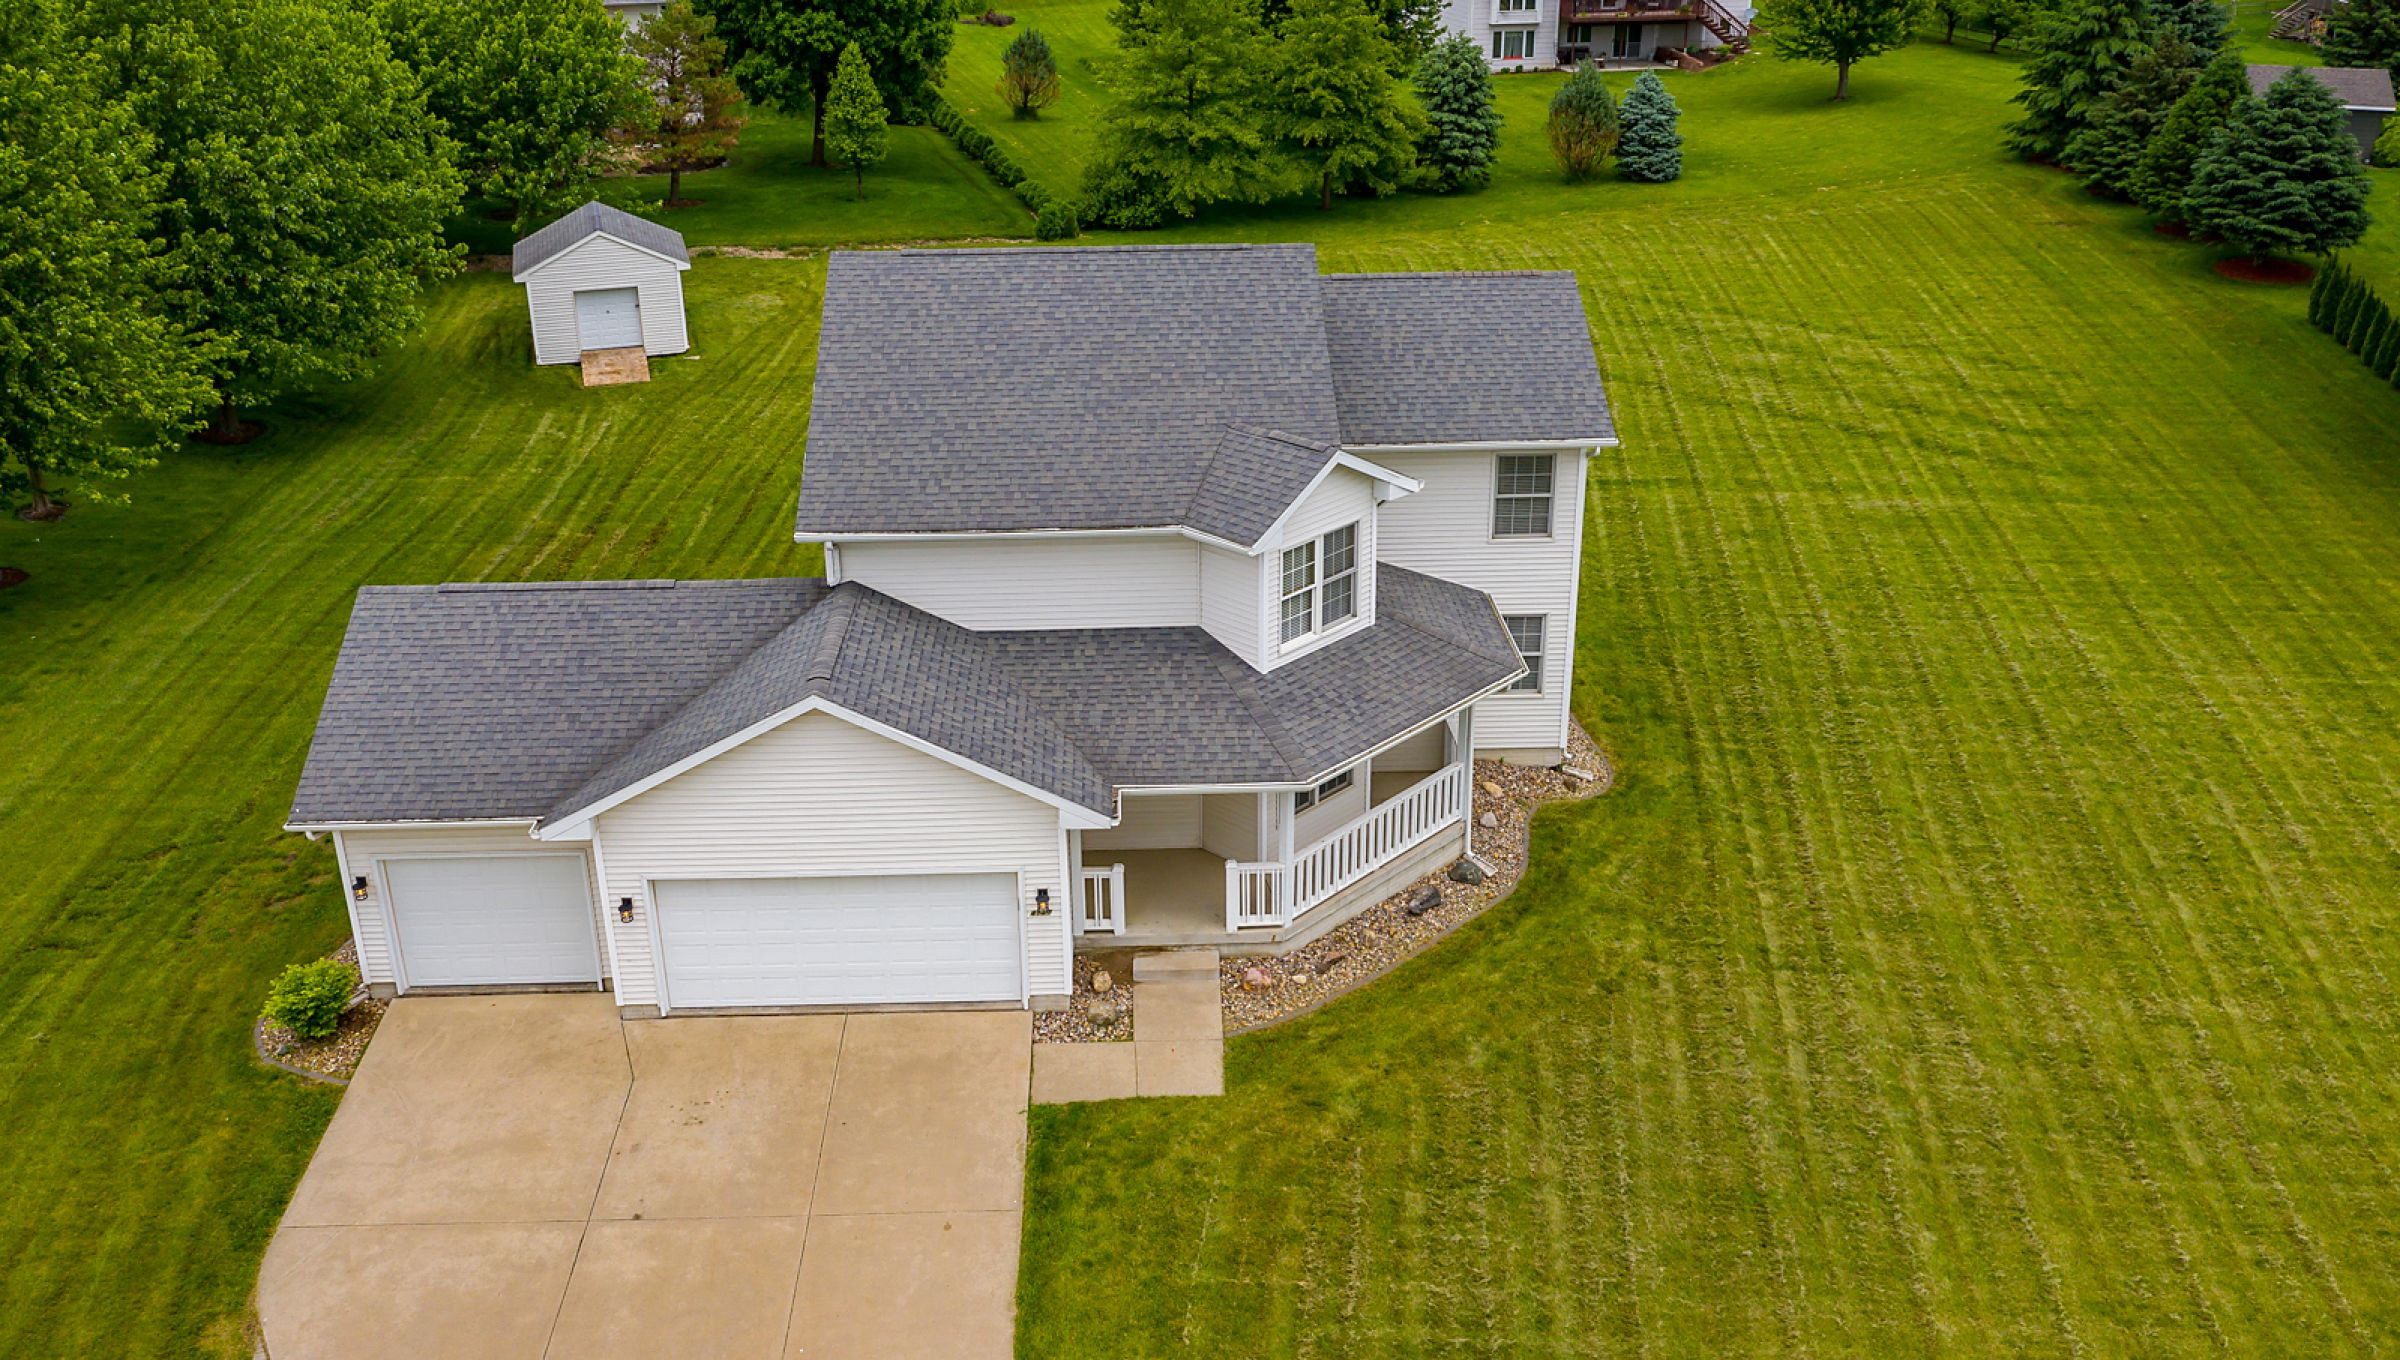 residential-warren-county-iowa-1-acres-listing-number-14999-3-2020-05-29-130356.jpg